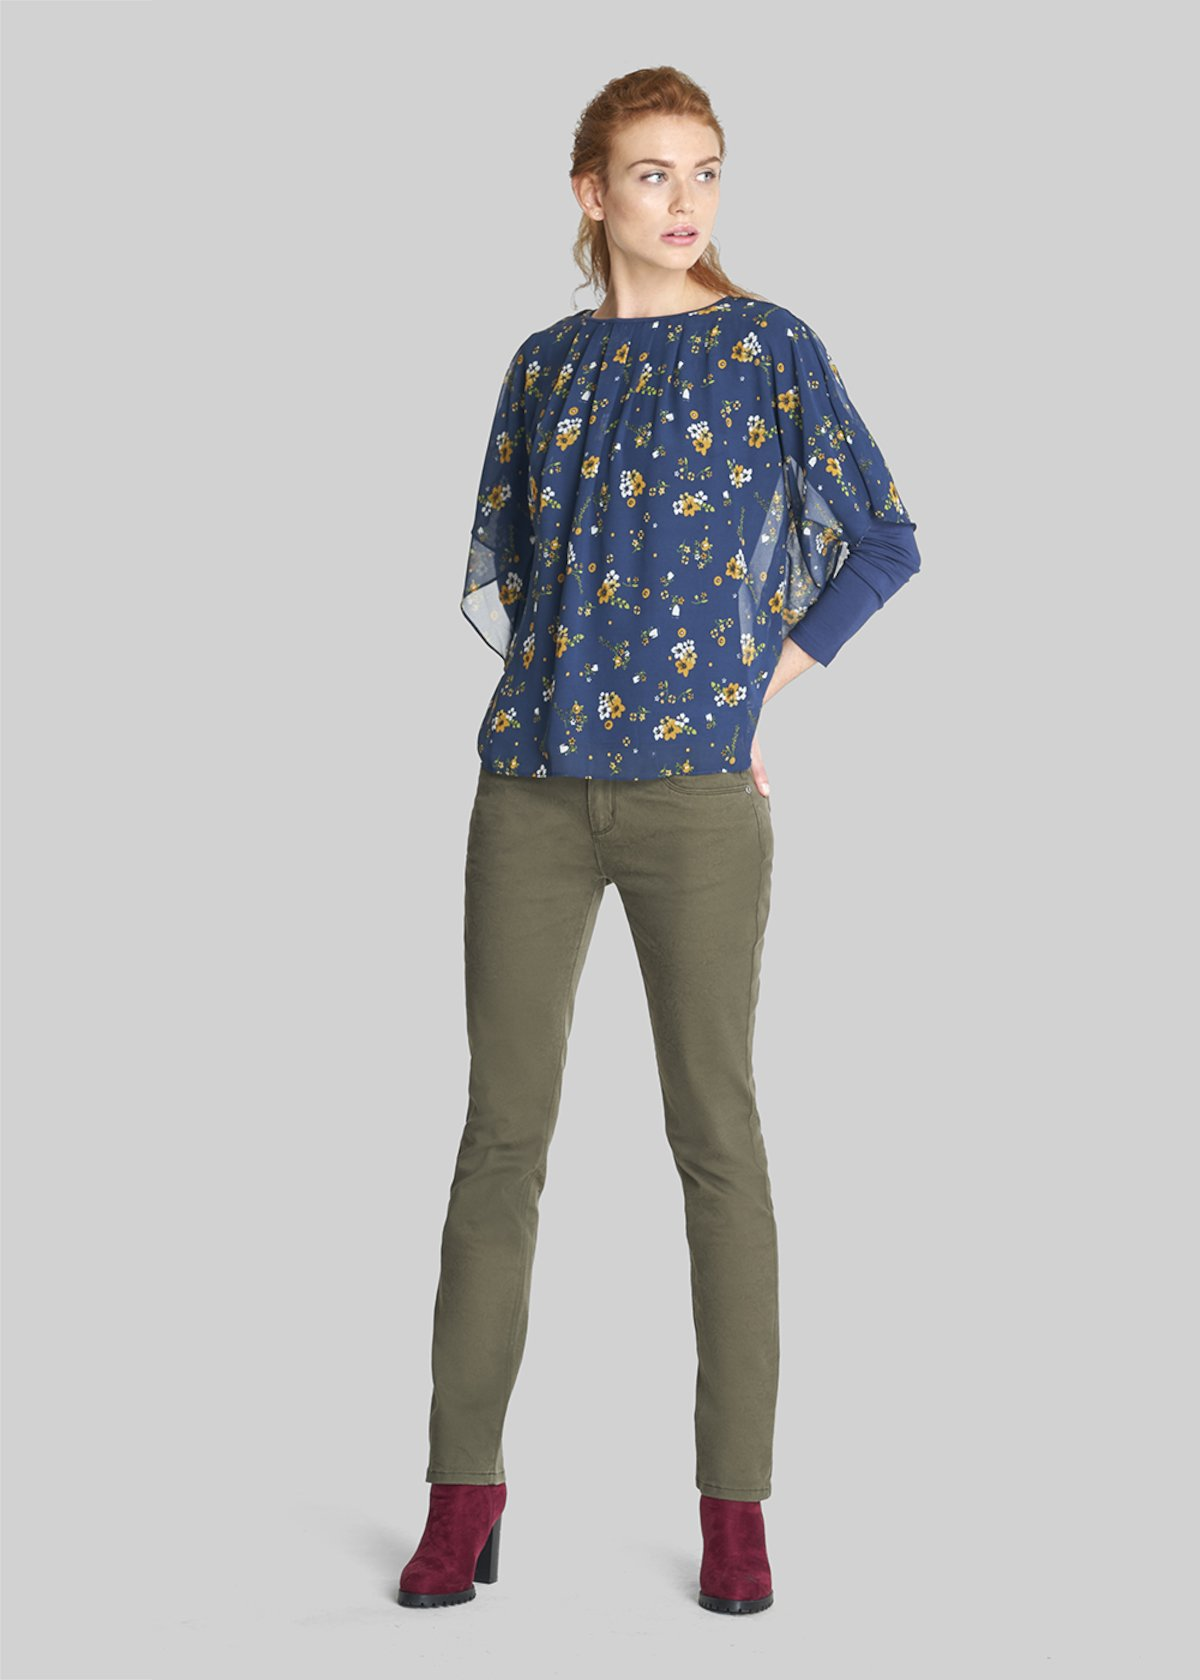 Susanna t-shirt jersey and georgette with micro-floral pattern